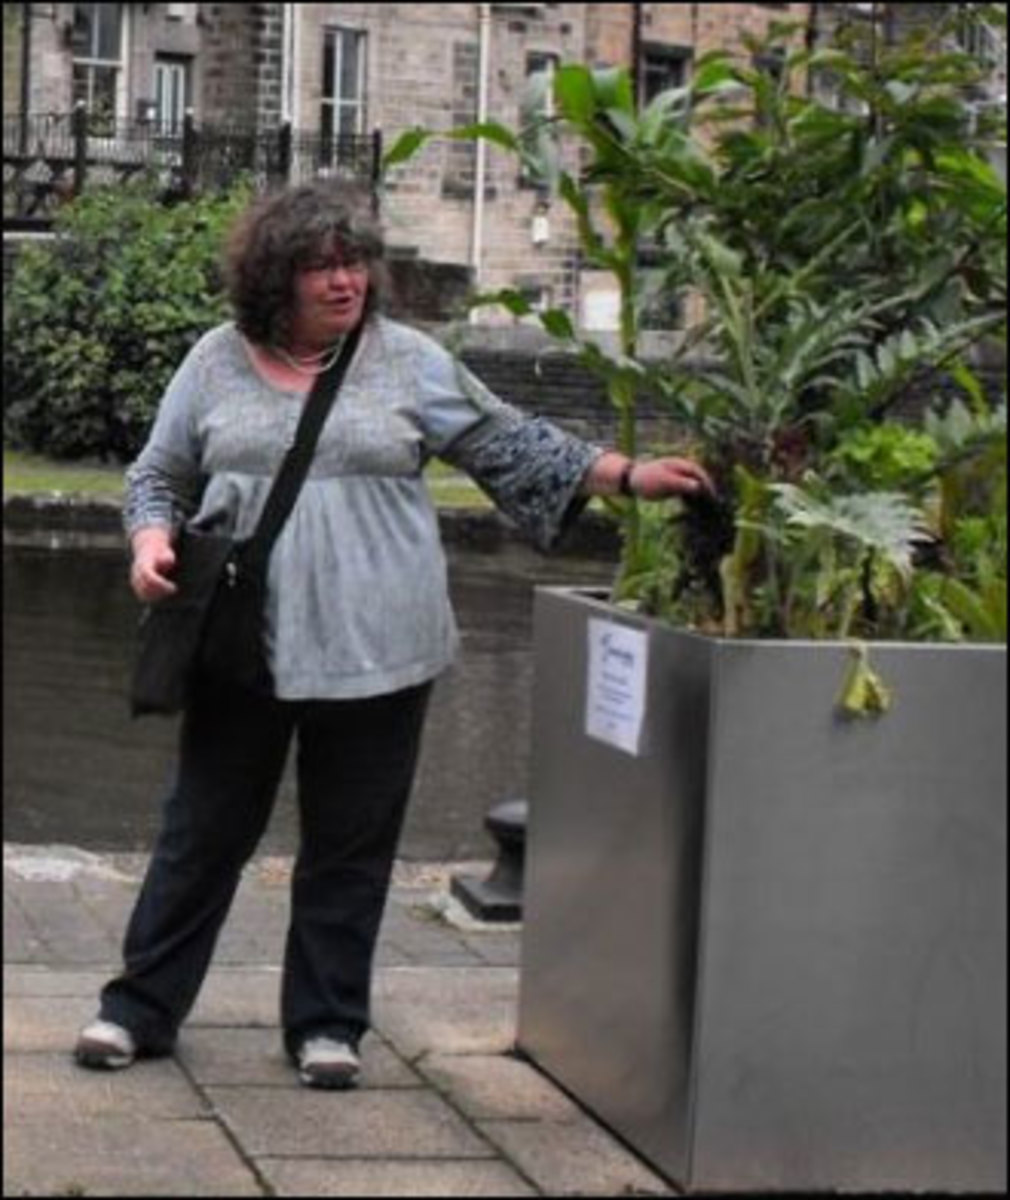 Mary Clear inspects one of the public vegetable containers.